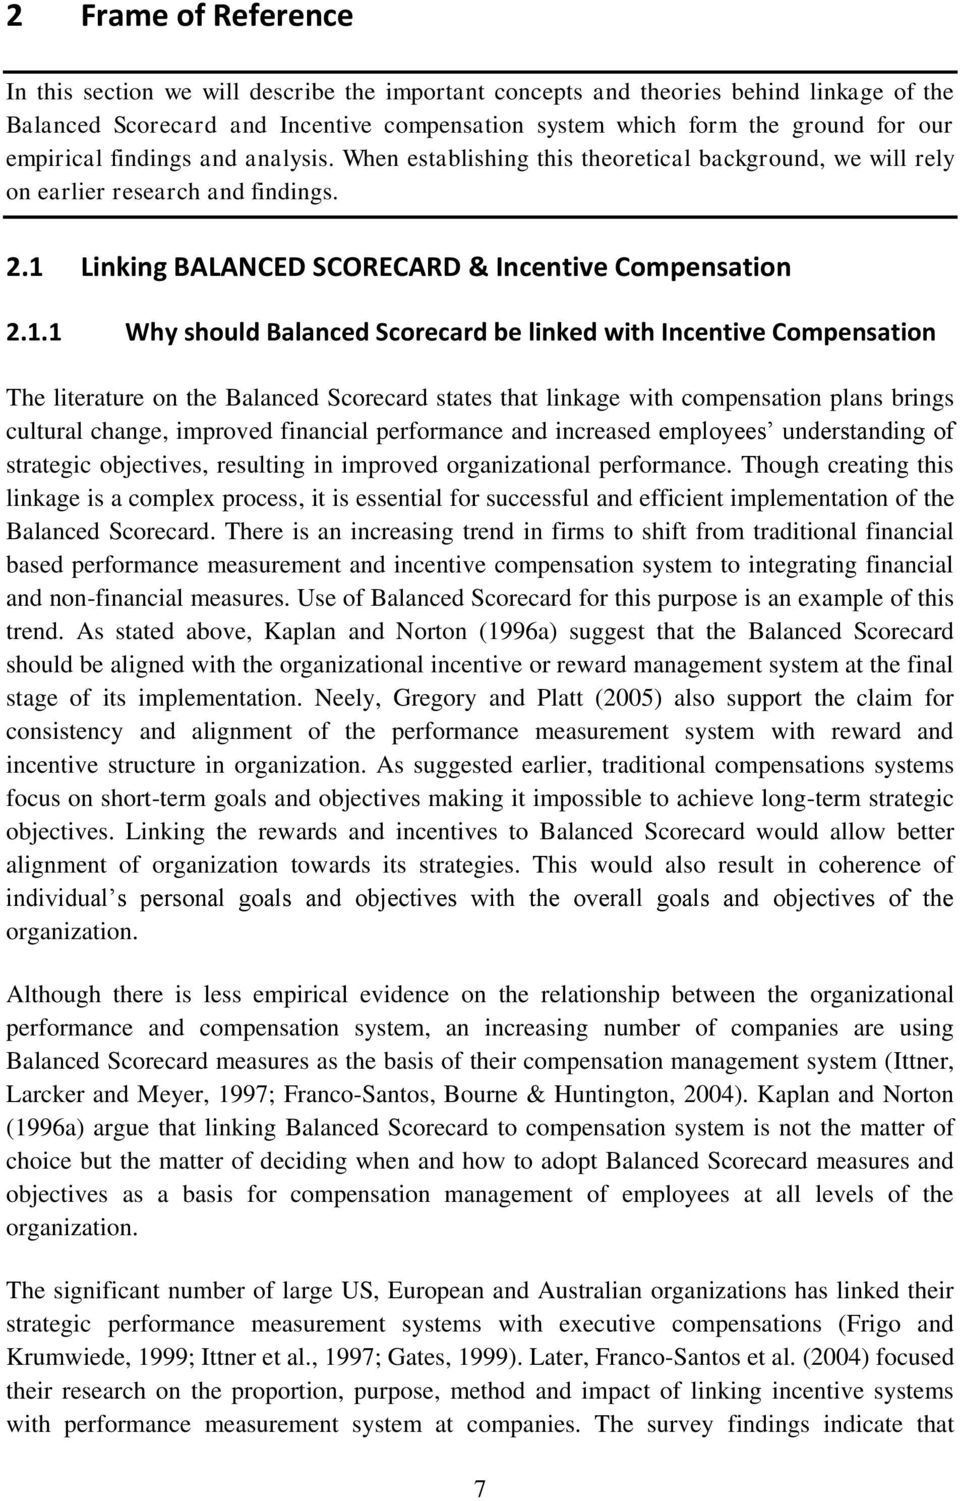 Linking BALANCED SCORECARD & Incentive Compensation 2.1.